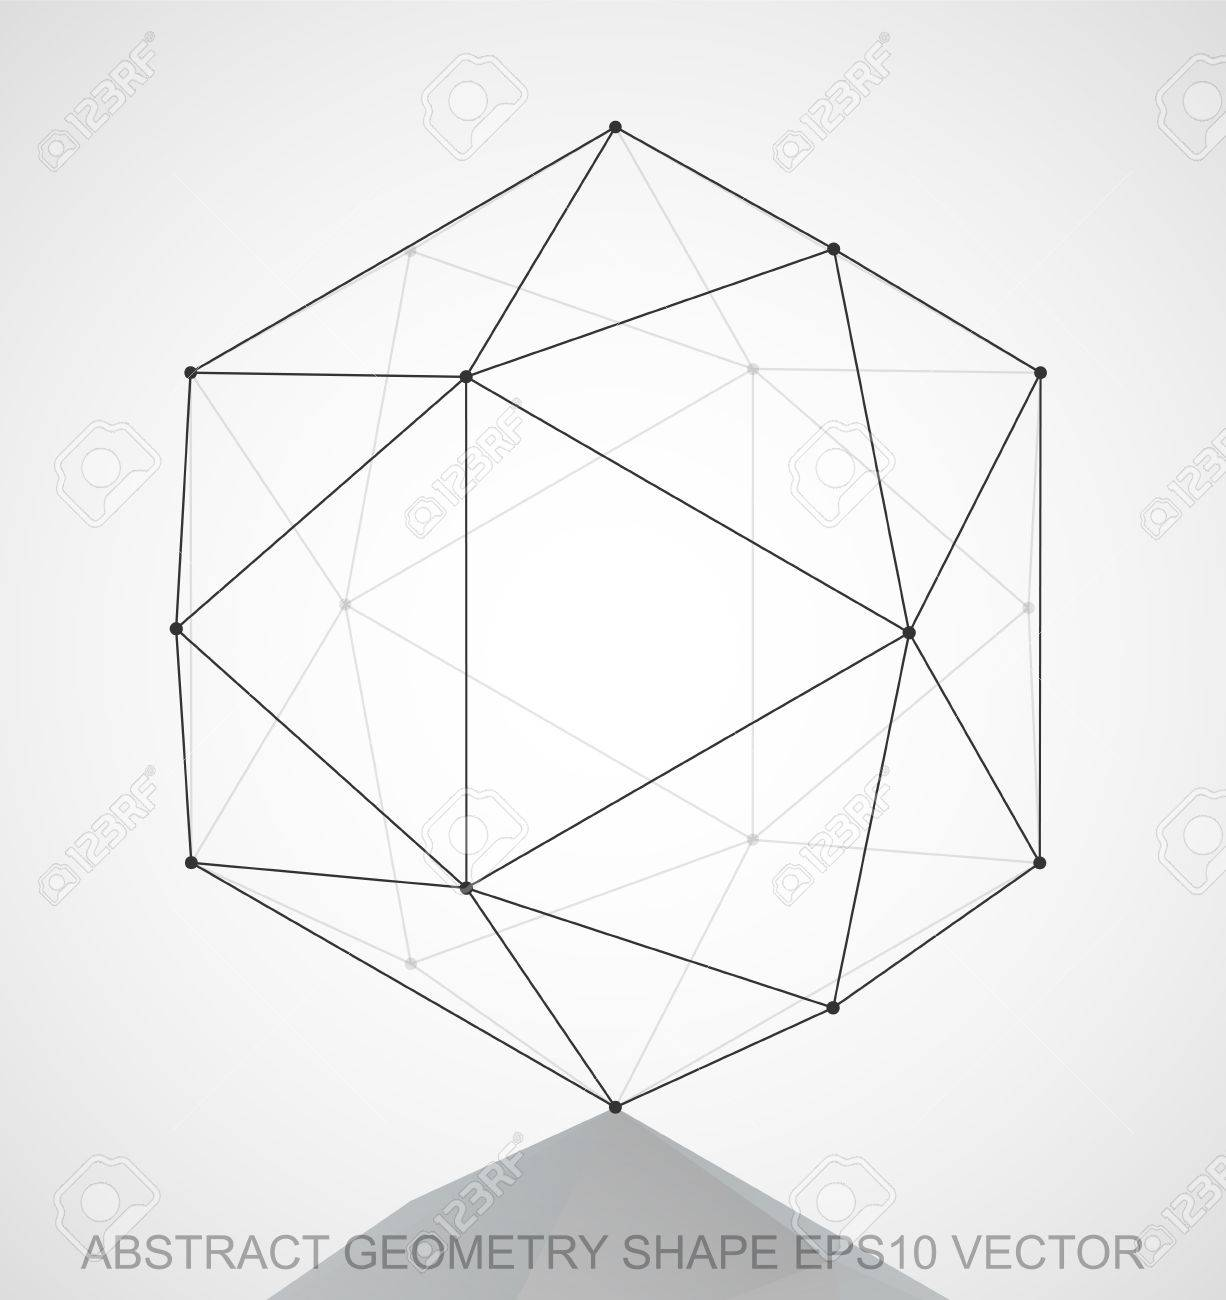 Abstract Geometry Shape Black Sketched Octahedron With Reflection Hand Drawn 3D Polygonal